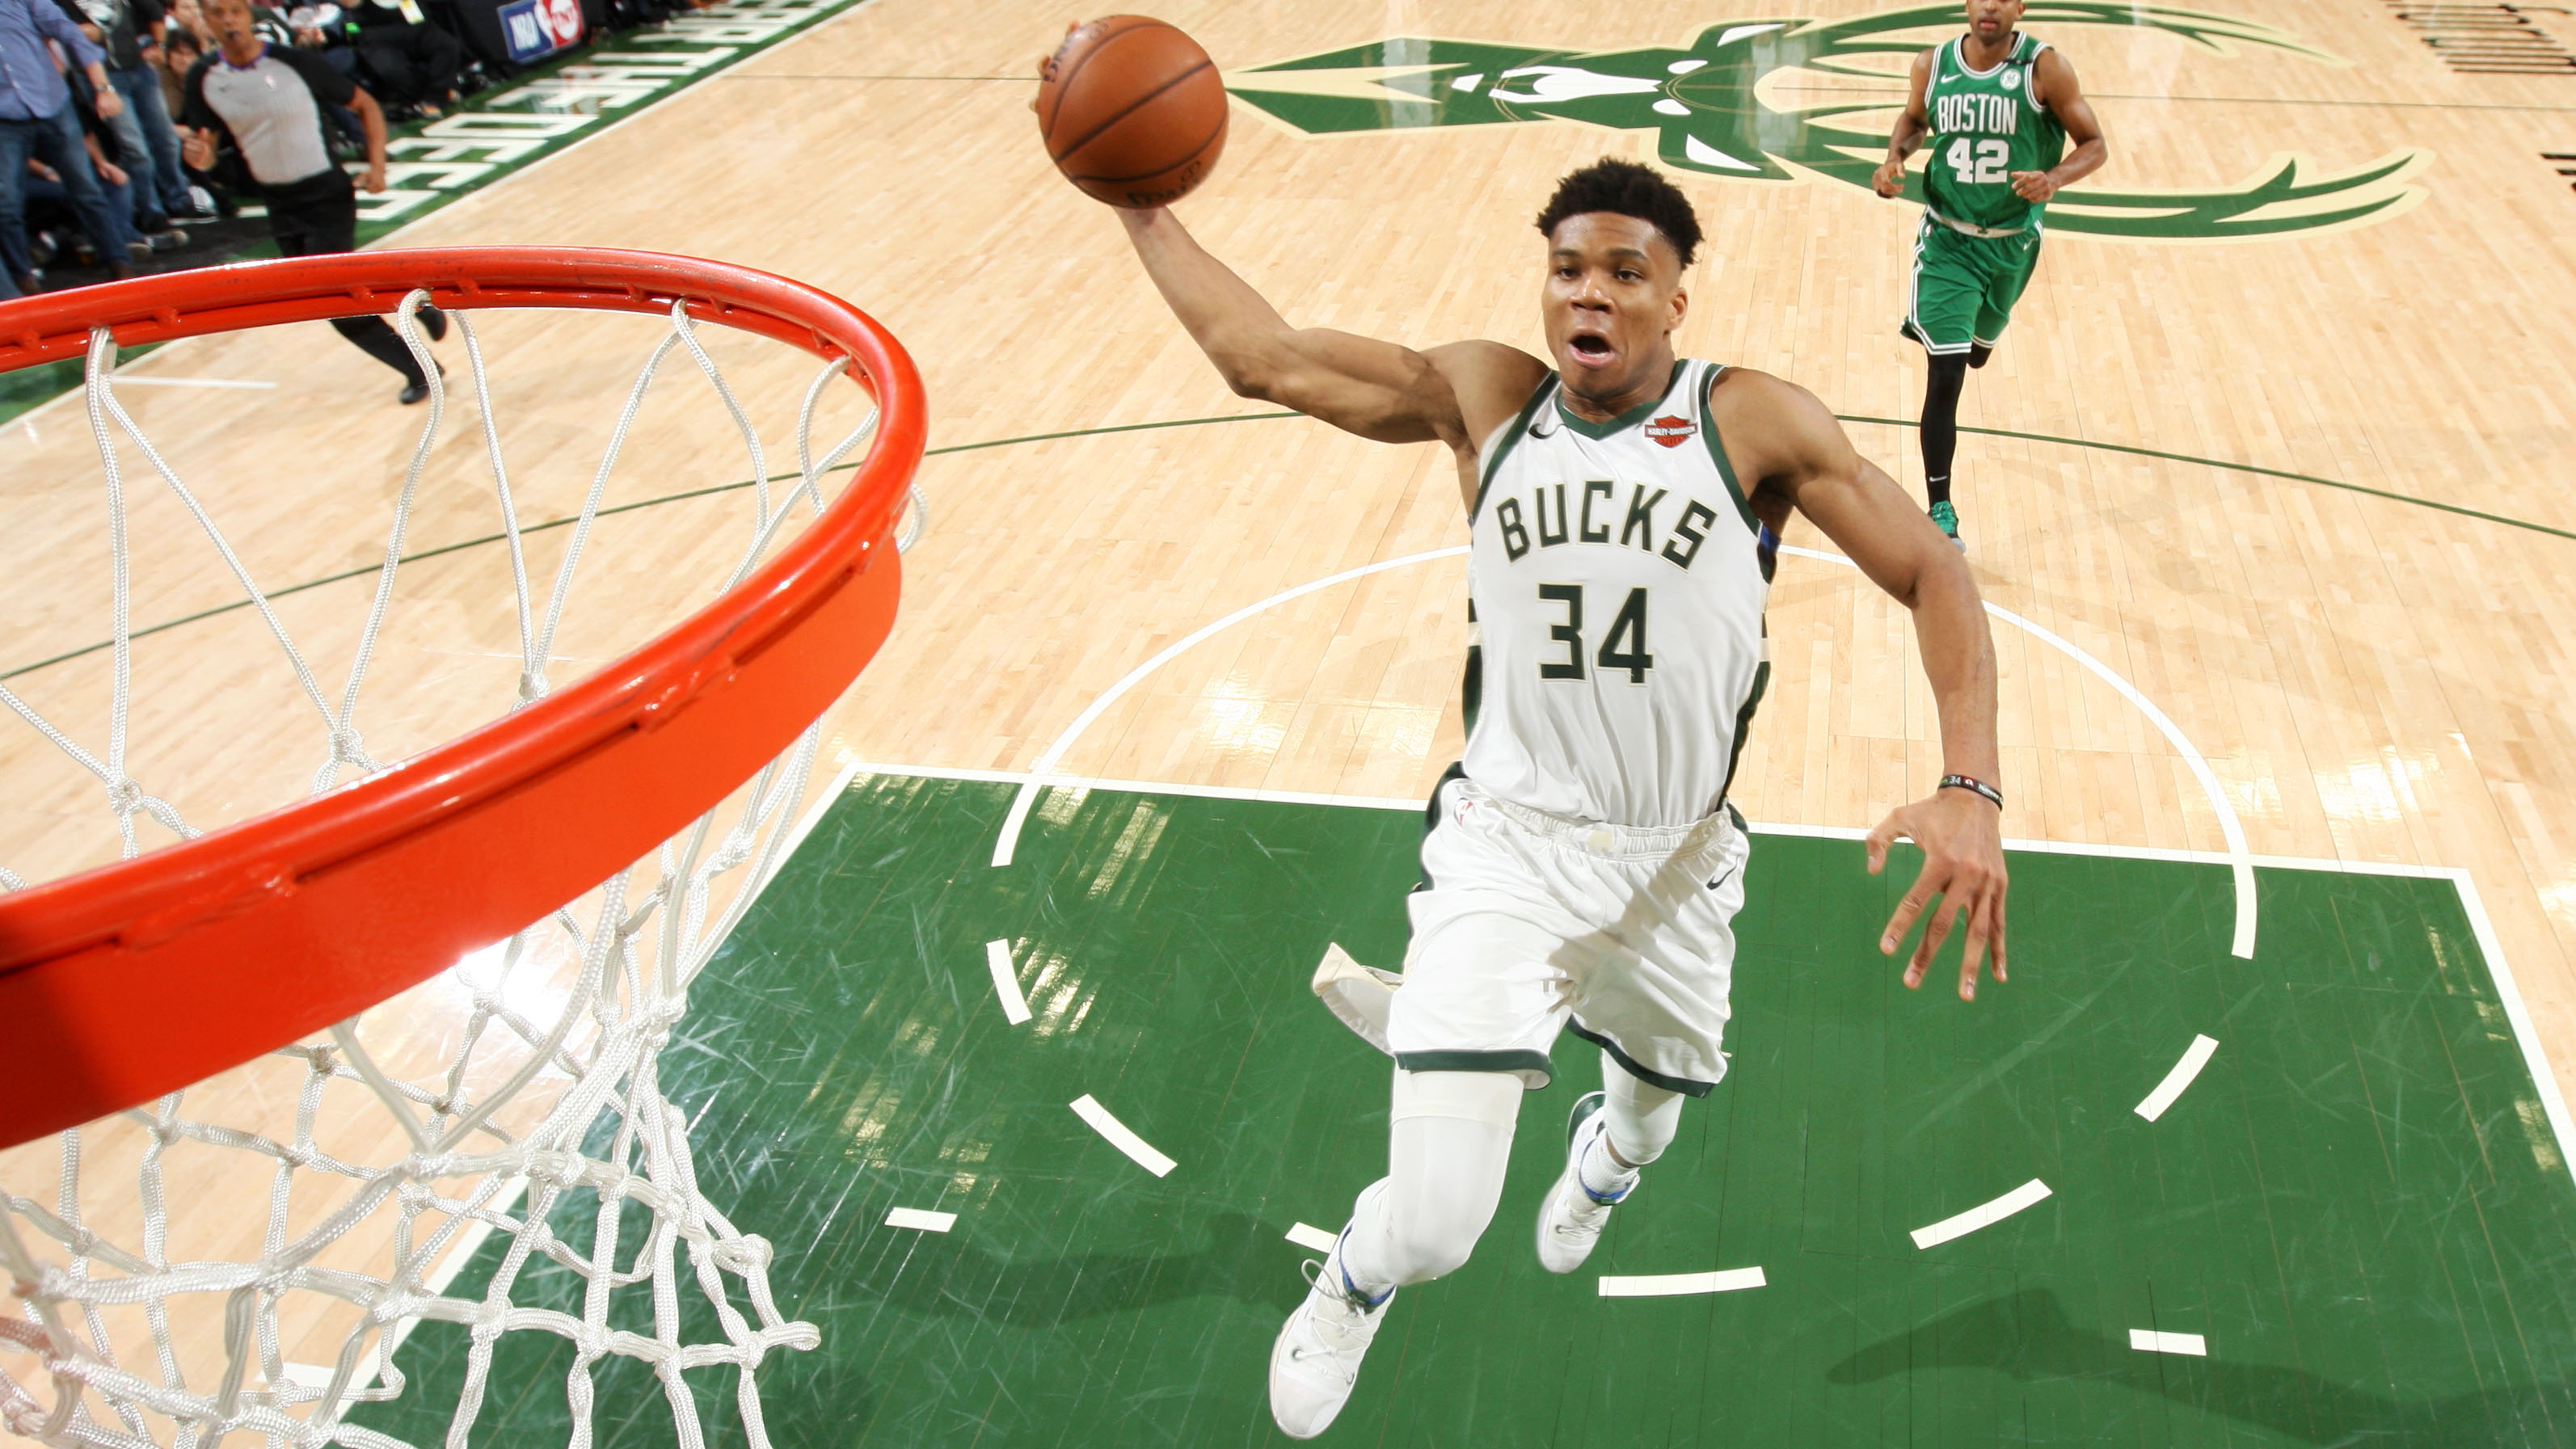 Best of Giannis Antetokounmpo's Dunks from the 2018-19 Season